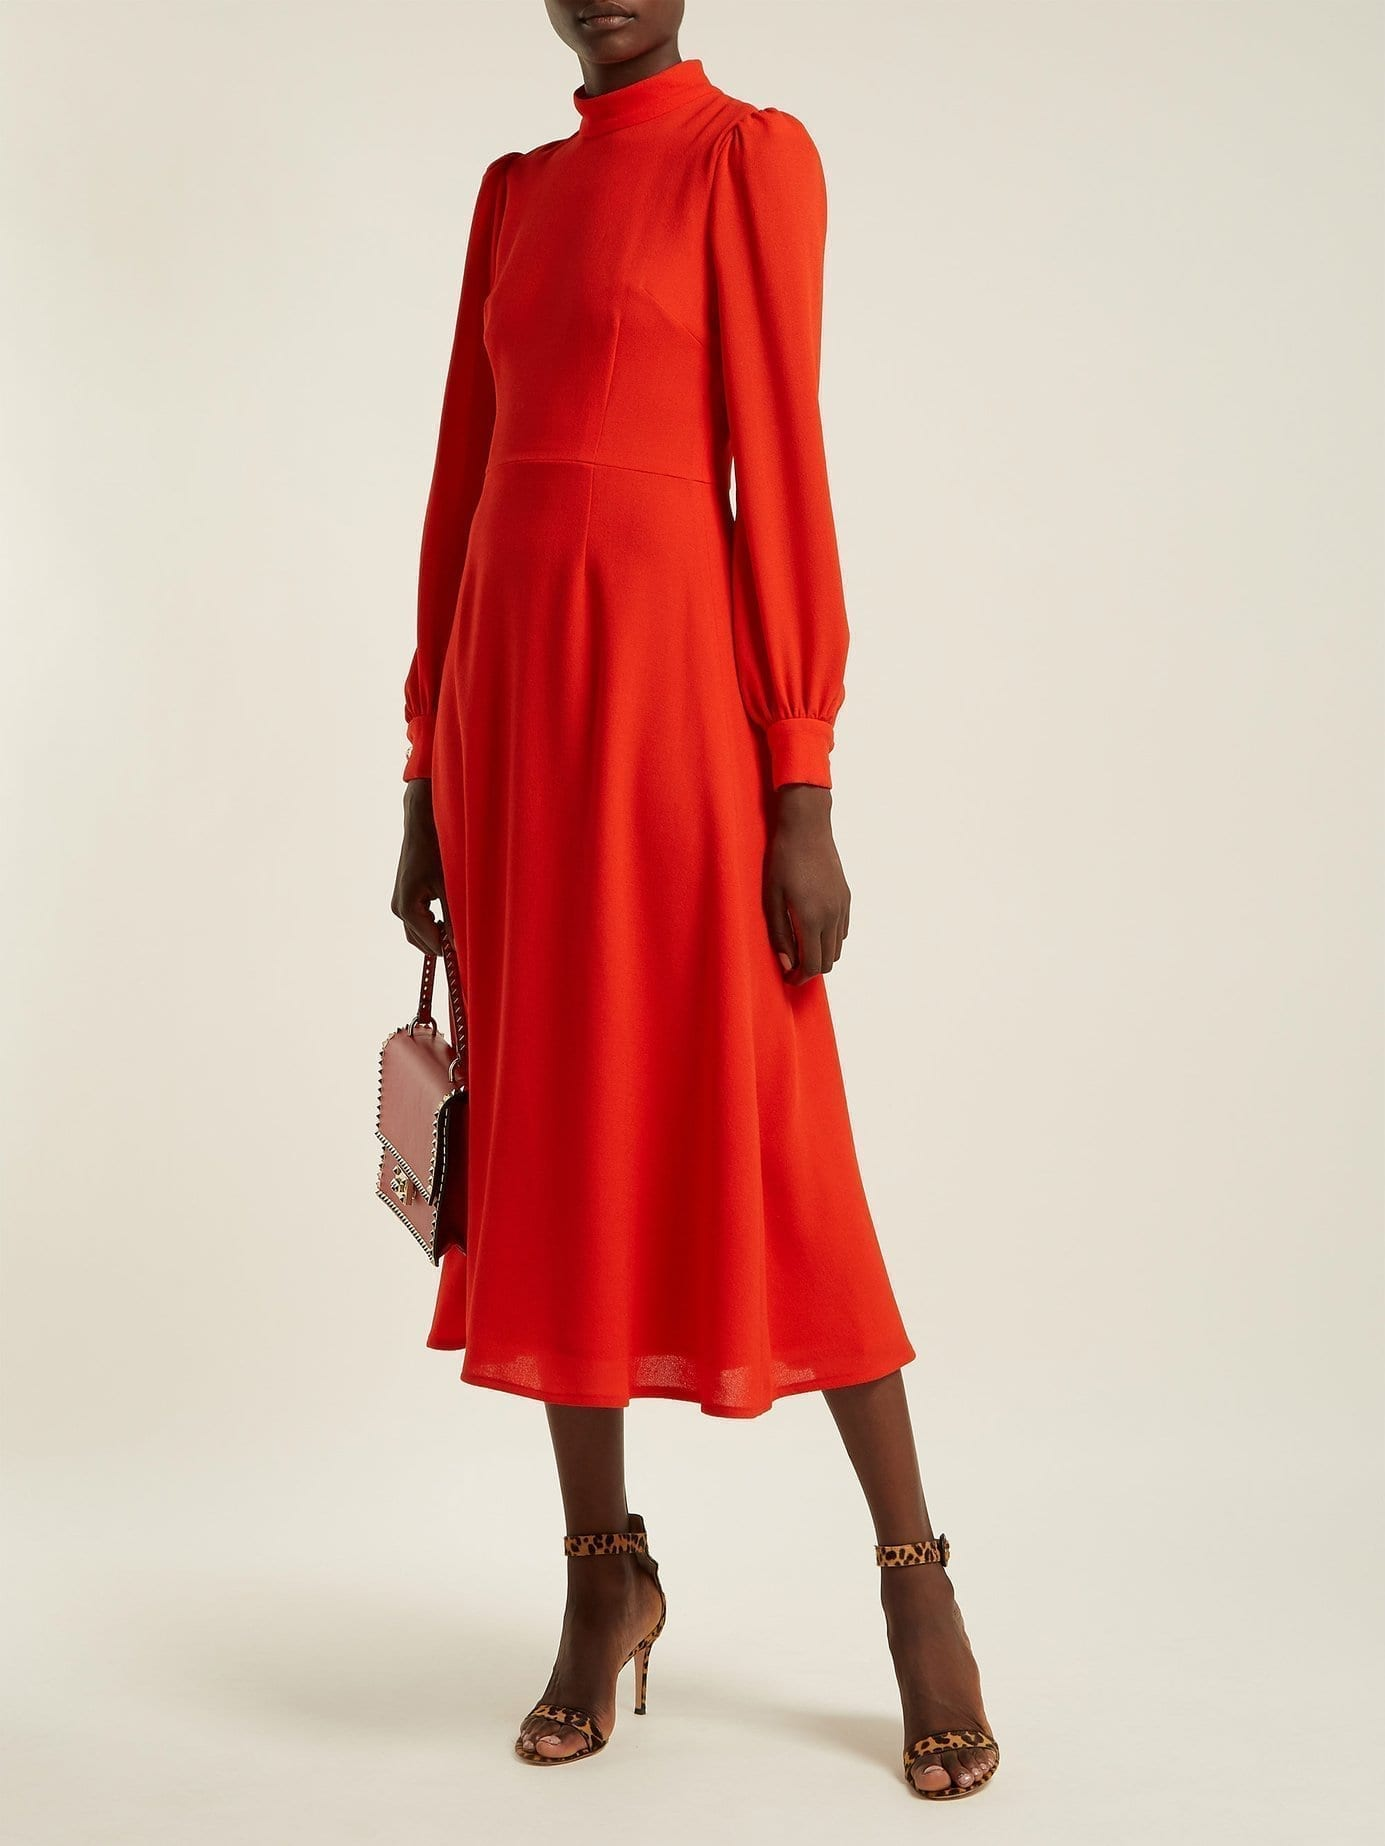 Fashion style Red dress wool for woman